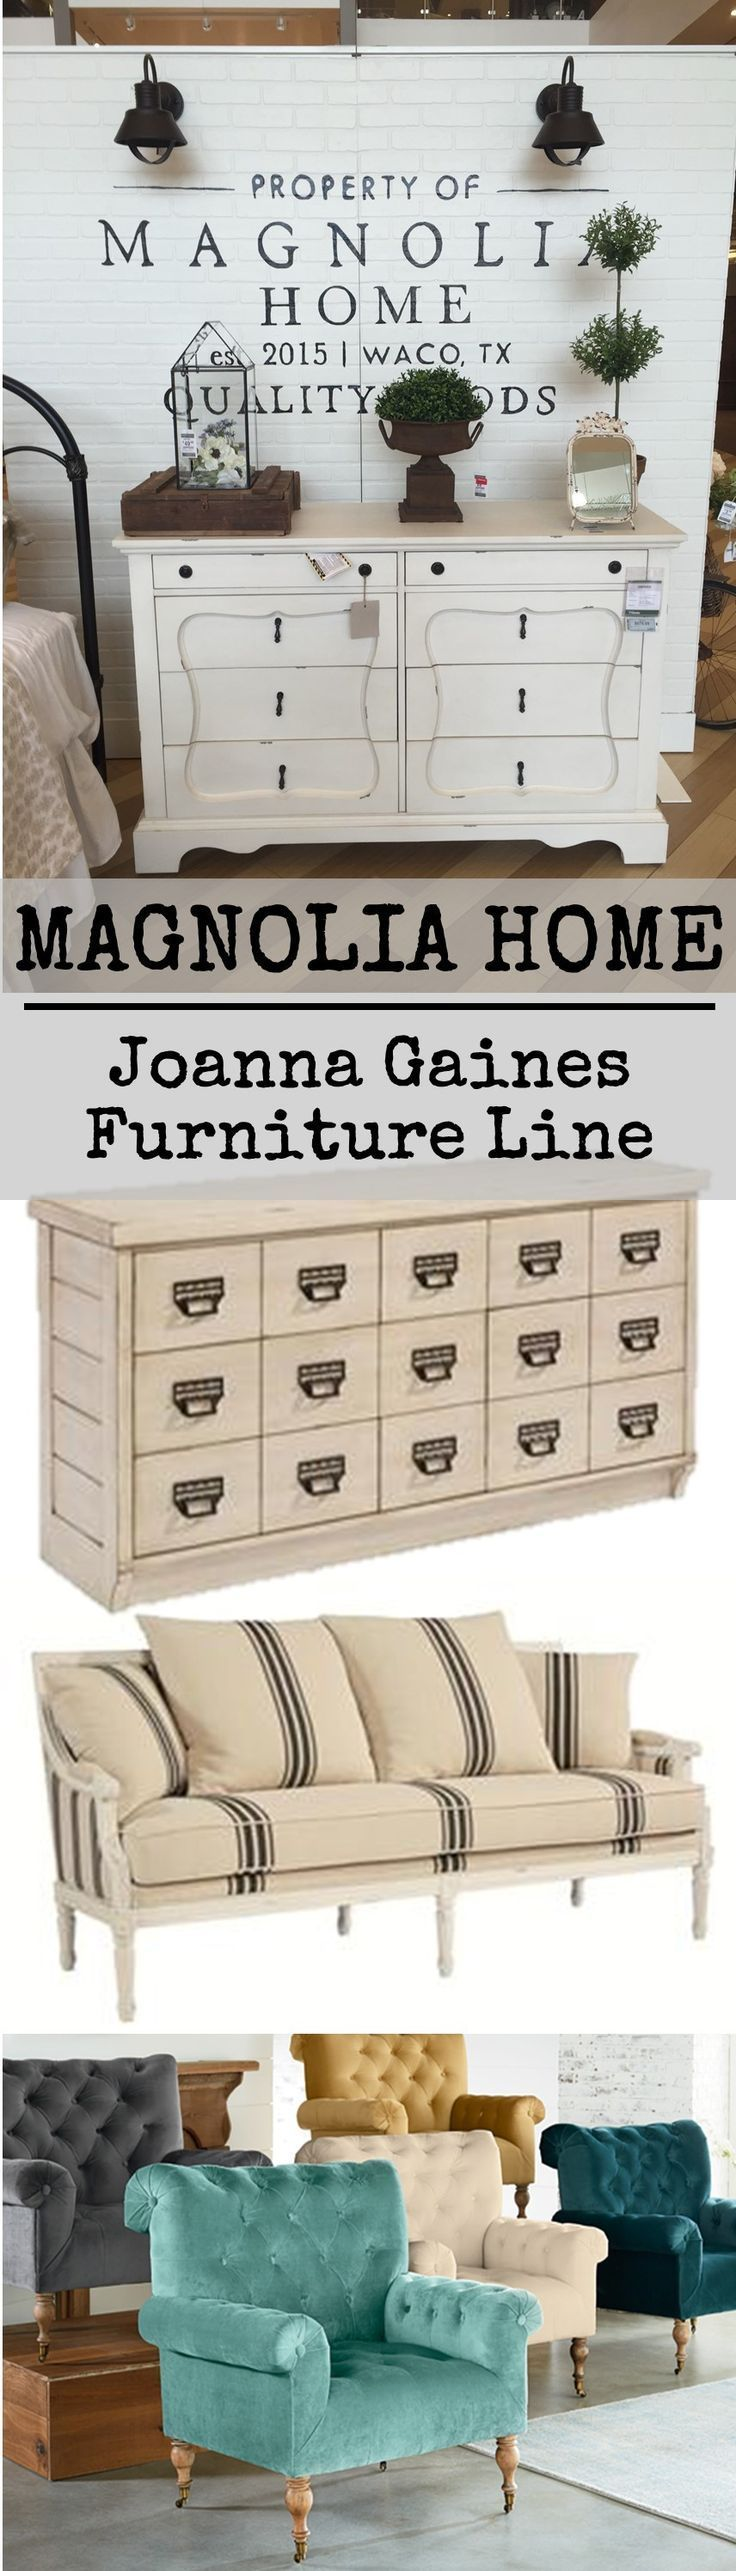 68 best joanna gaines fixer upper magnolia farms images on for Furniture etc reviews